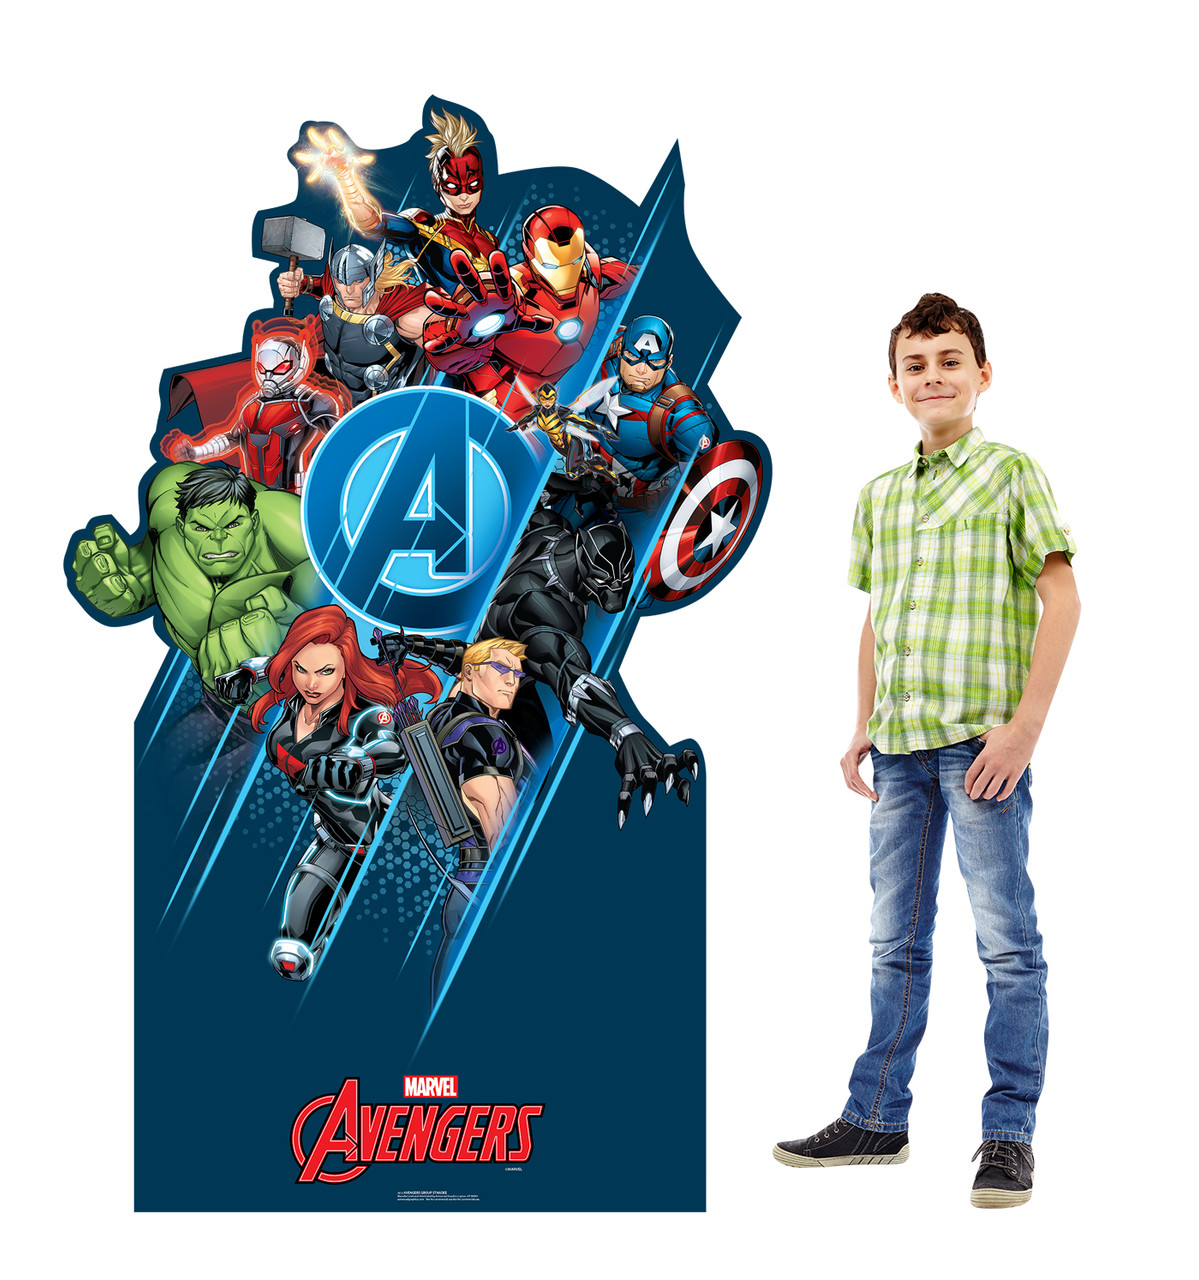 Life-size cardboard standee of the Avengers Classic Group with model.